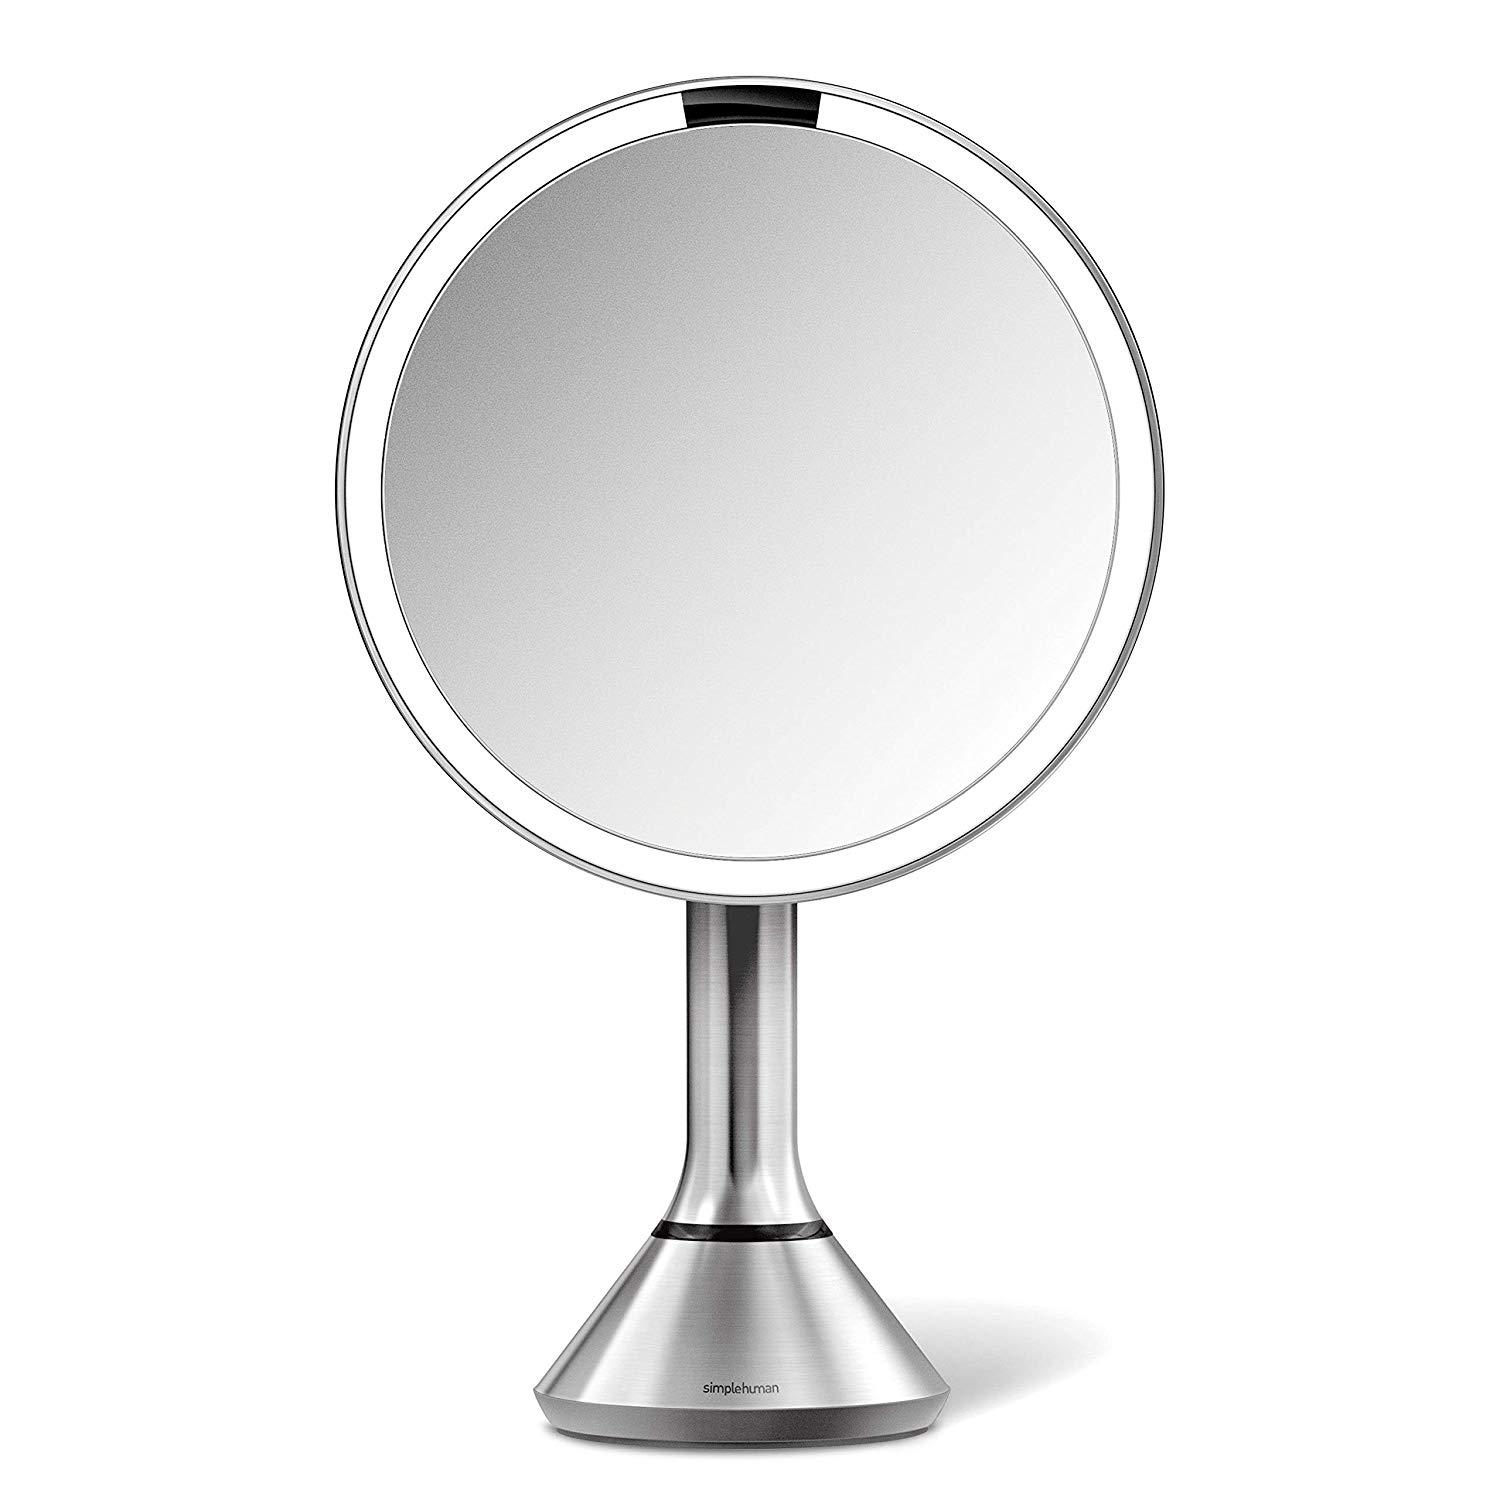 Sensor Lighted Makeup Vanity Mirror